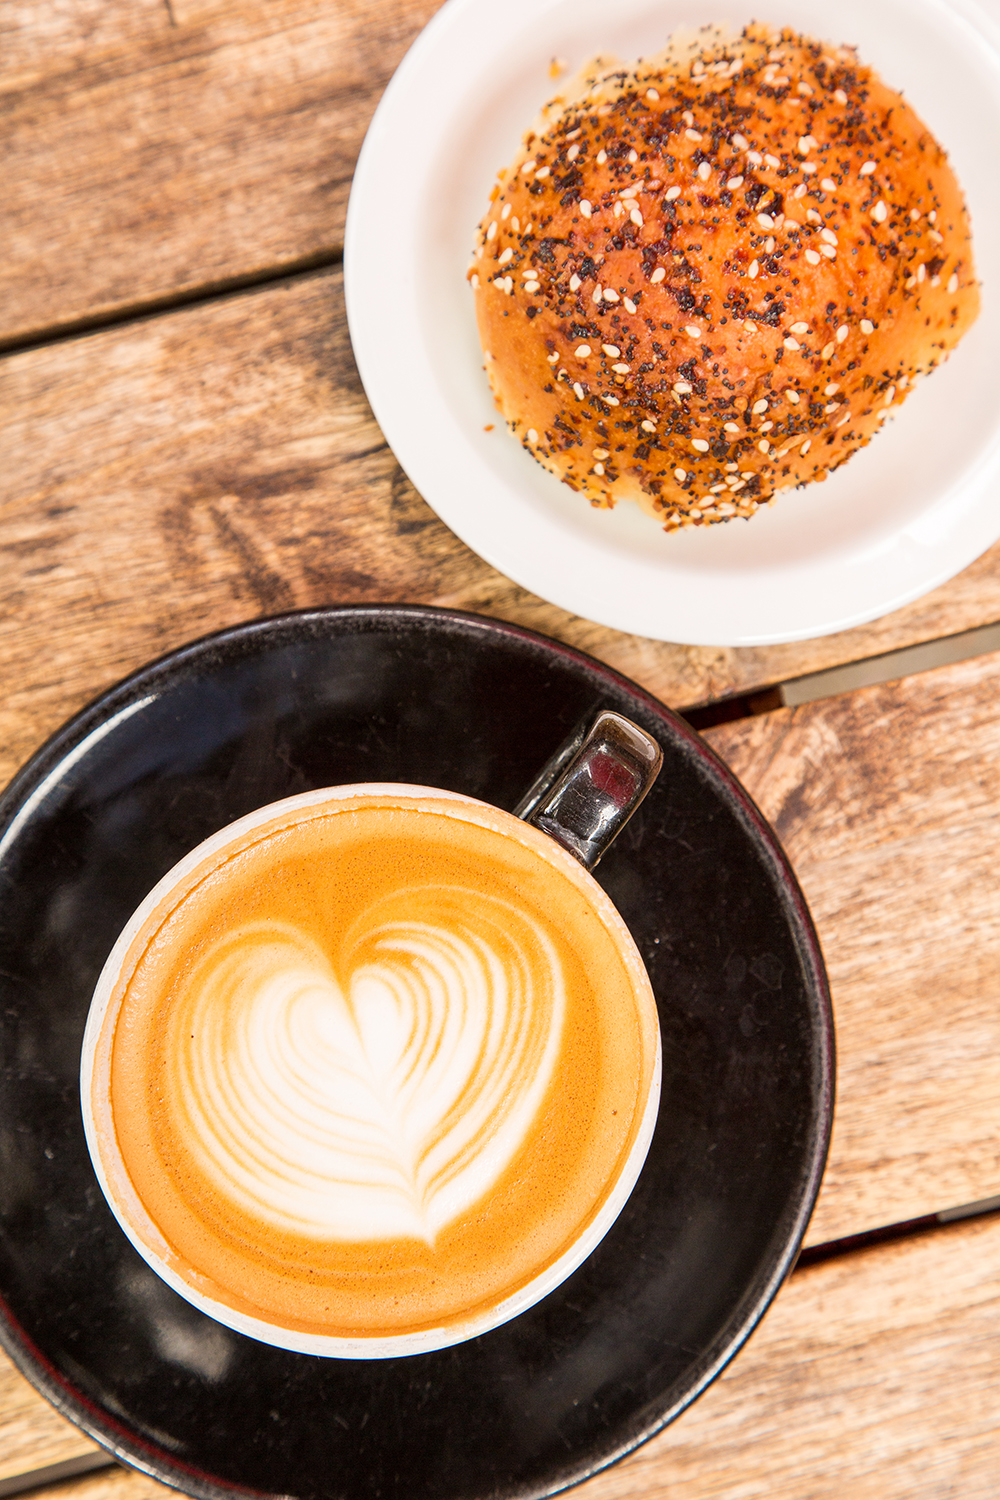 Star your day off right with a specialty coffee drink and kolache